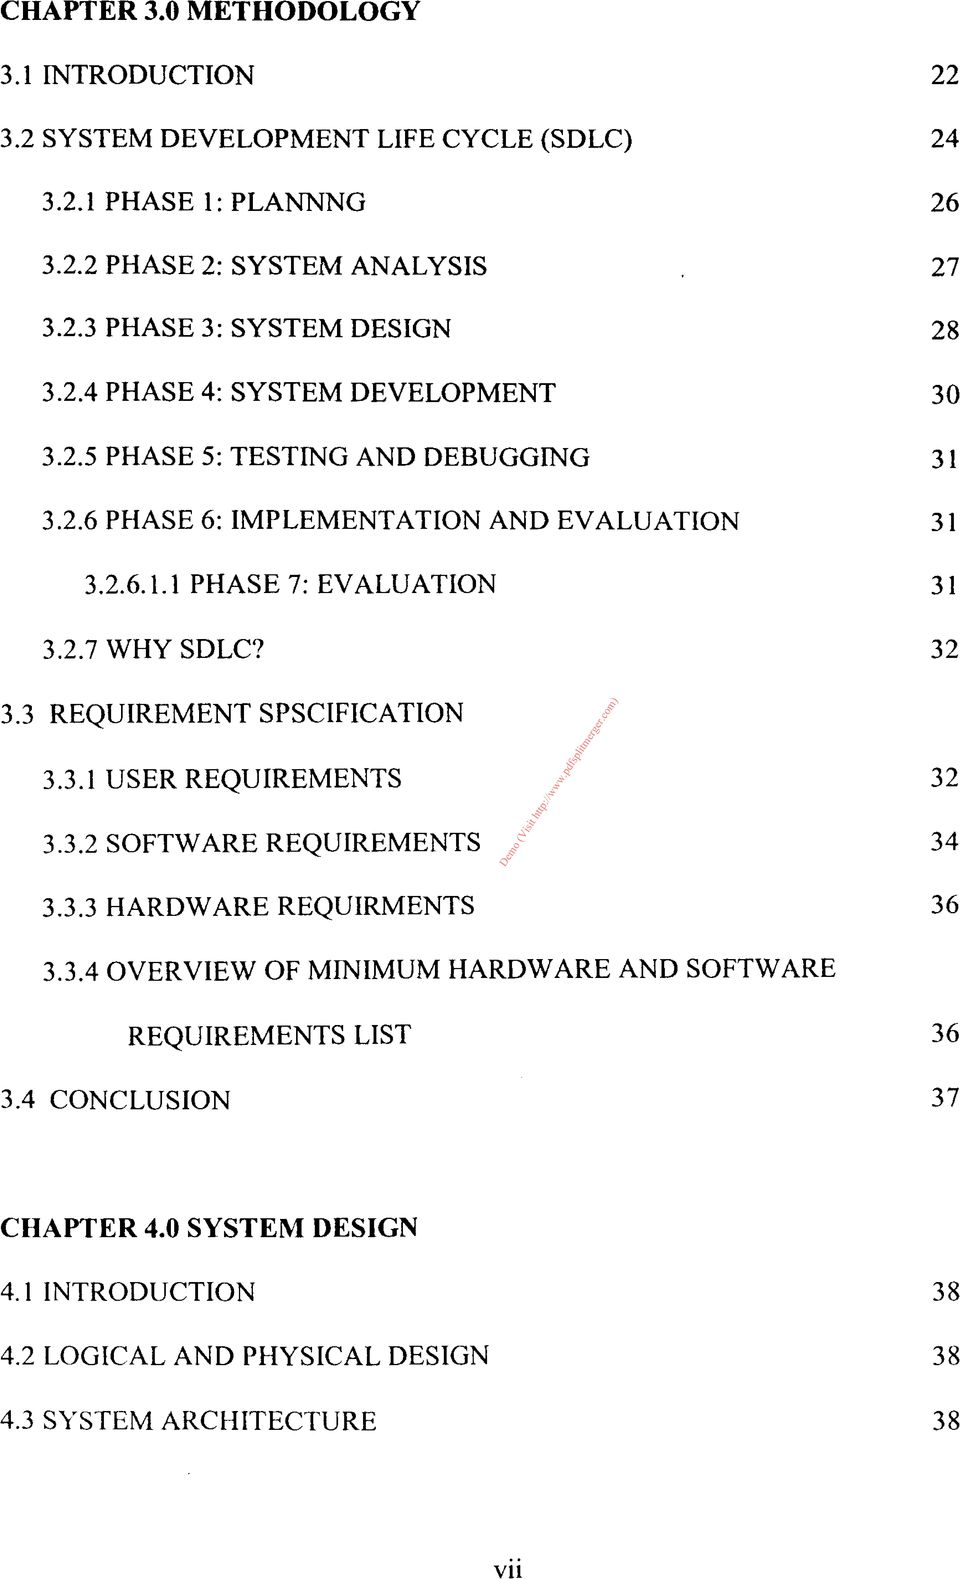 32 3.3 REQUIREMENT SPSCIFICATION 3.3.1 USER REQUIREMENTS 3.3.2 SOFTWARE REQUIREMENTS 32 34 3.3.3 HARDWARE REQUIRMENTS 36 3.3.4 OVERVIEW OF MINIMUM HARDWARE AND SOFTWARE REQUIREMENTS LIST 36 3.